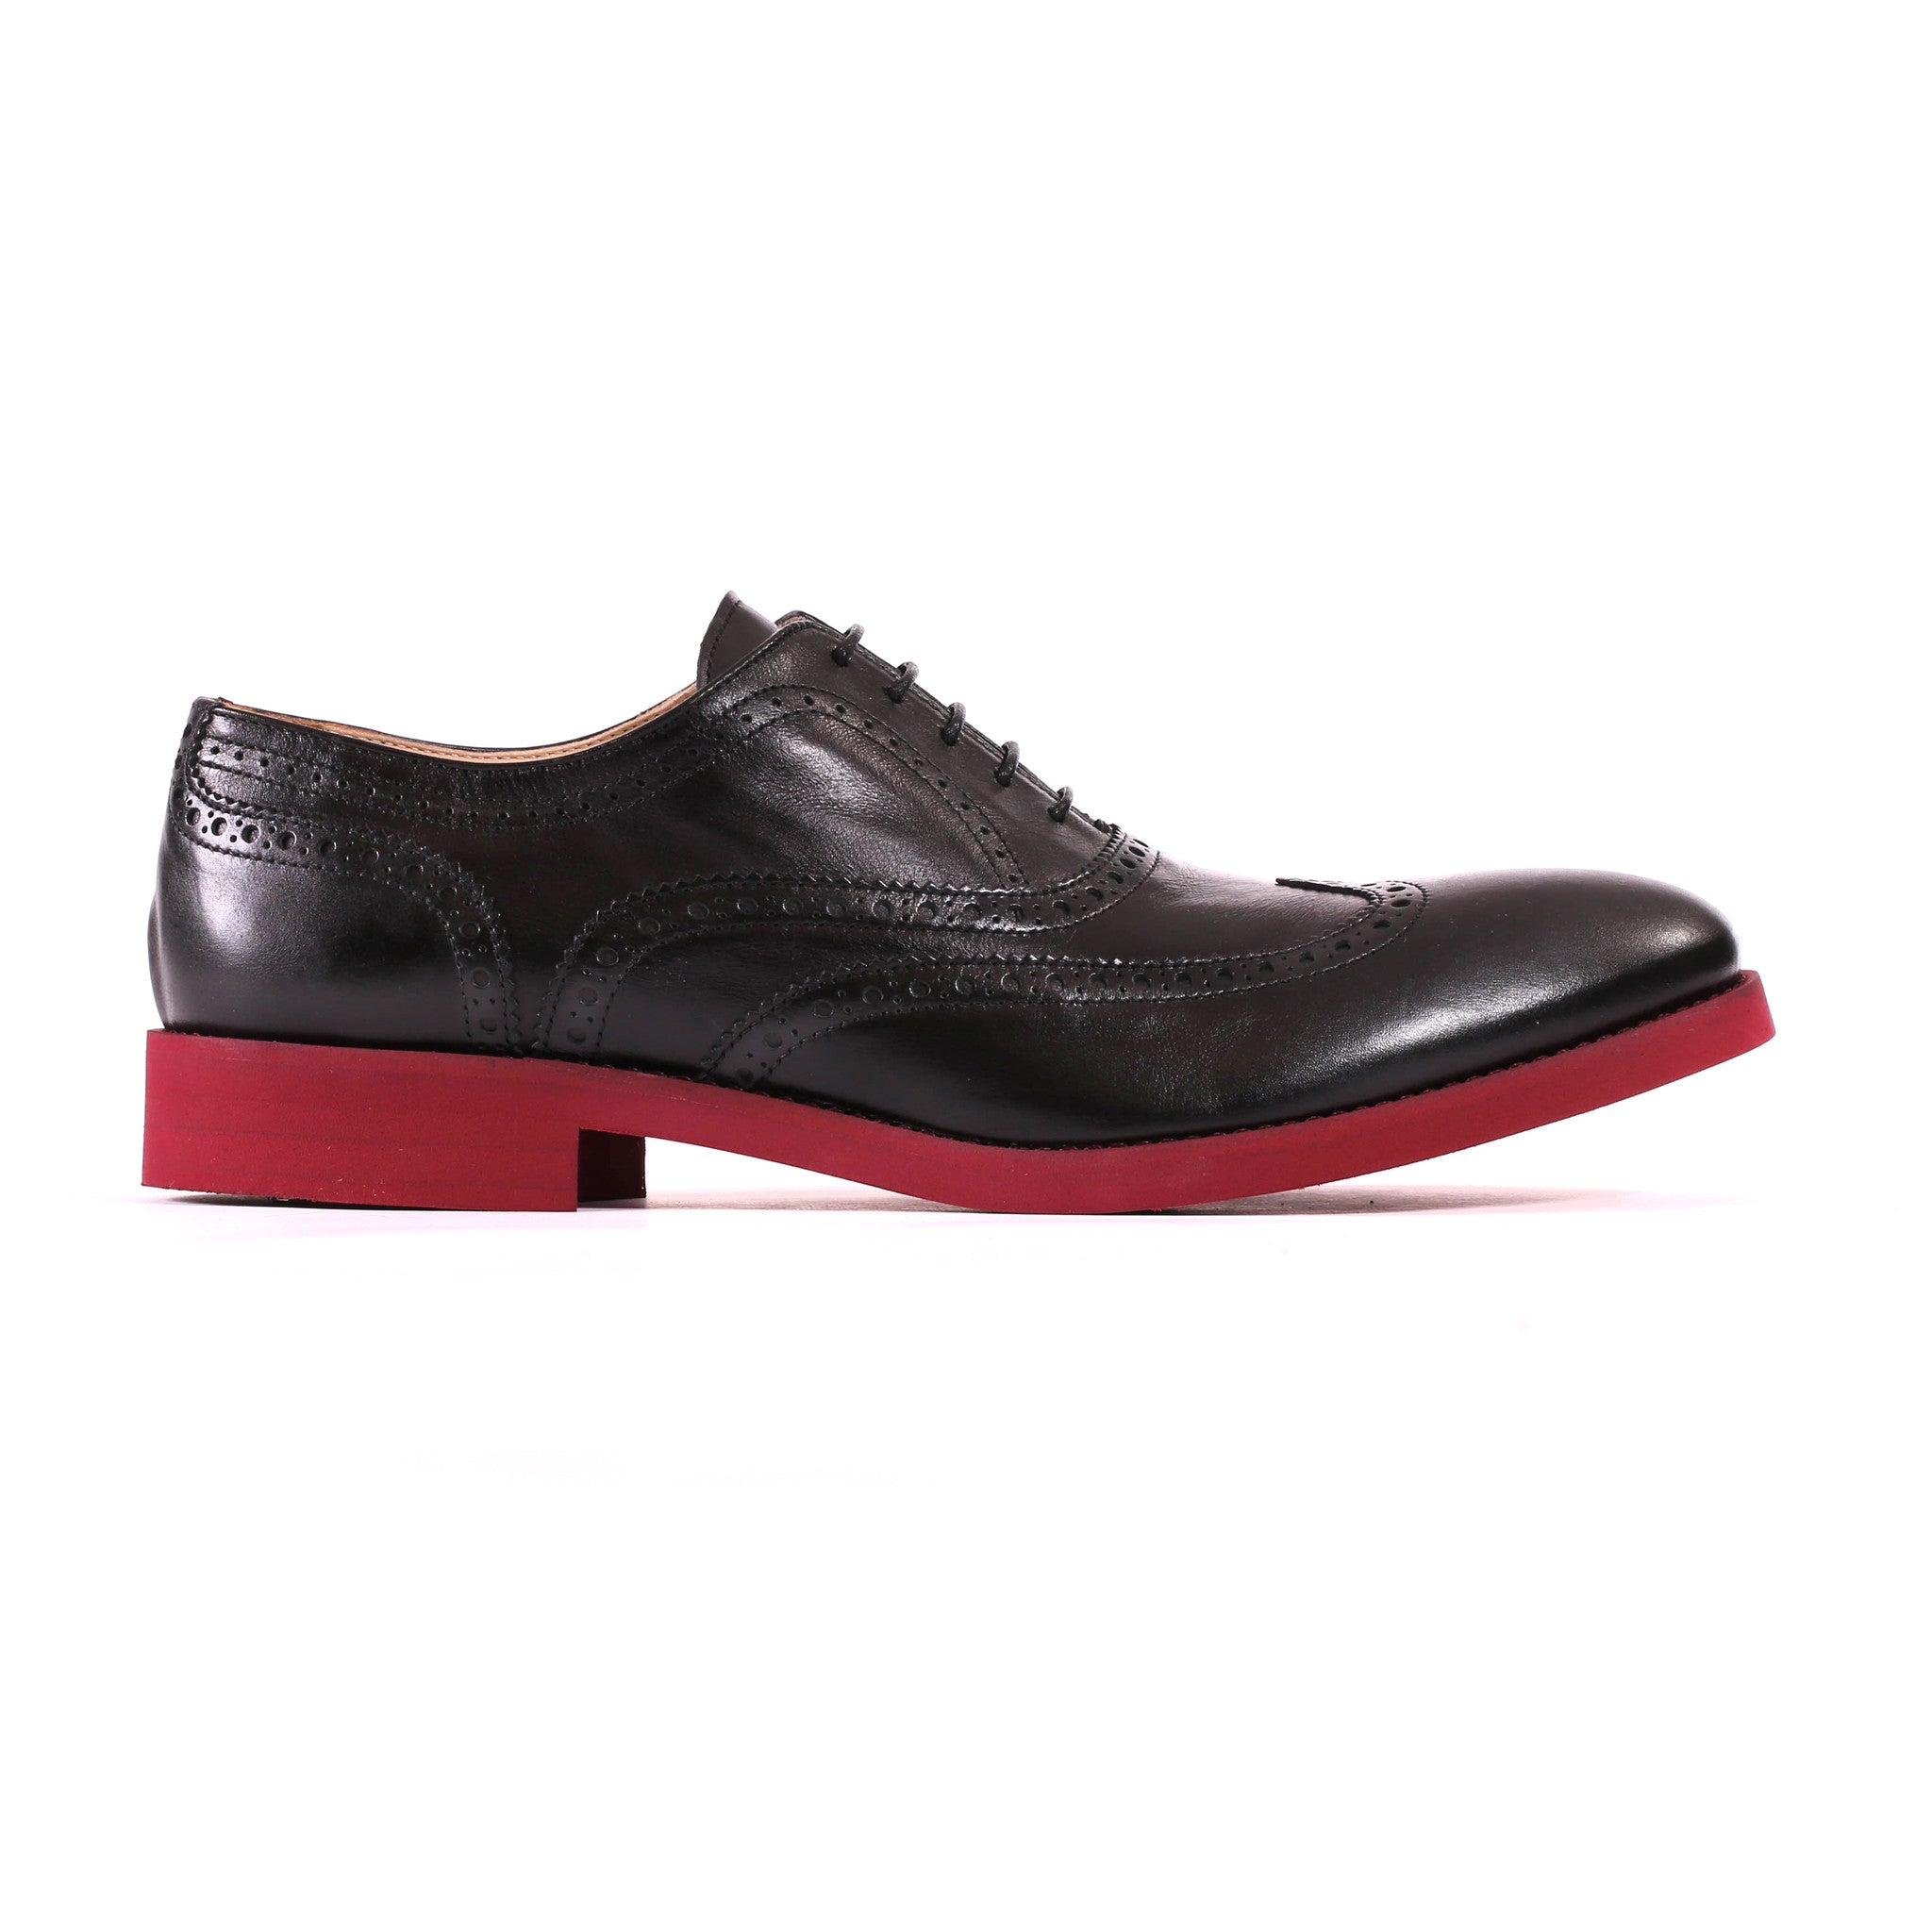 Black & Oxblood Brogue Wingtip